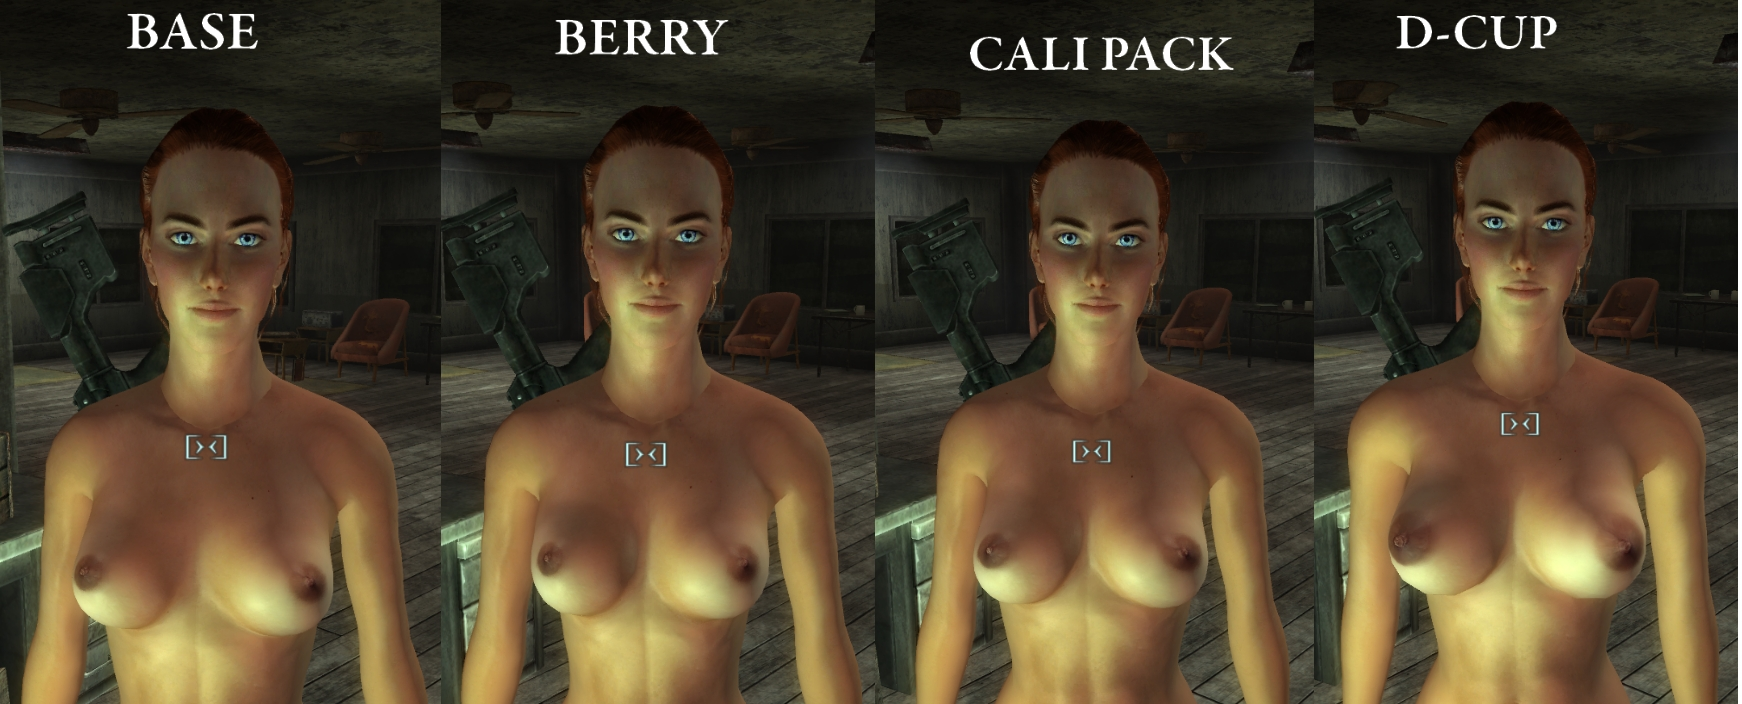 Fallout 3 the nude patch cartoon thumbs